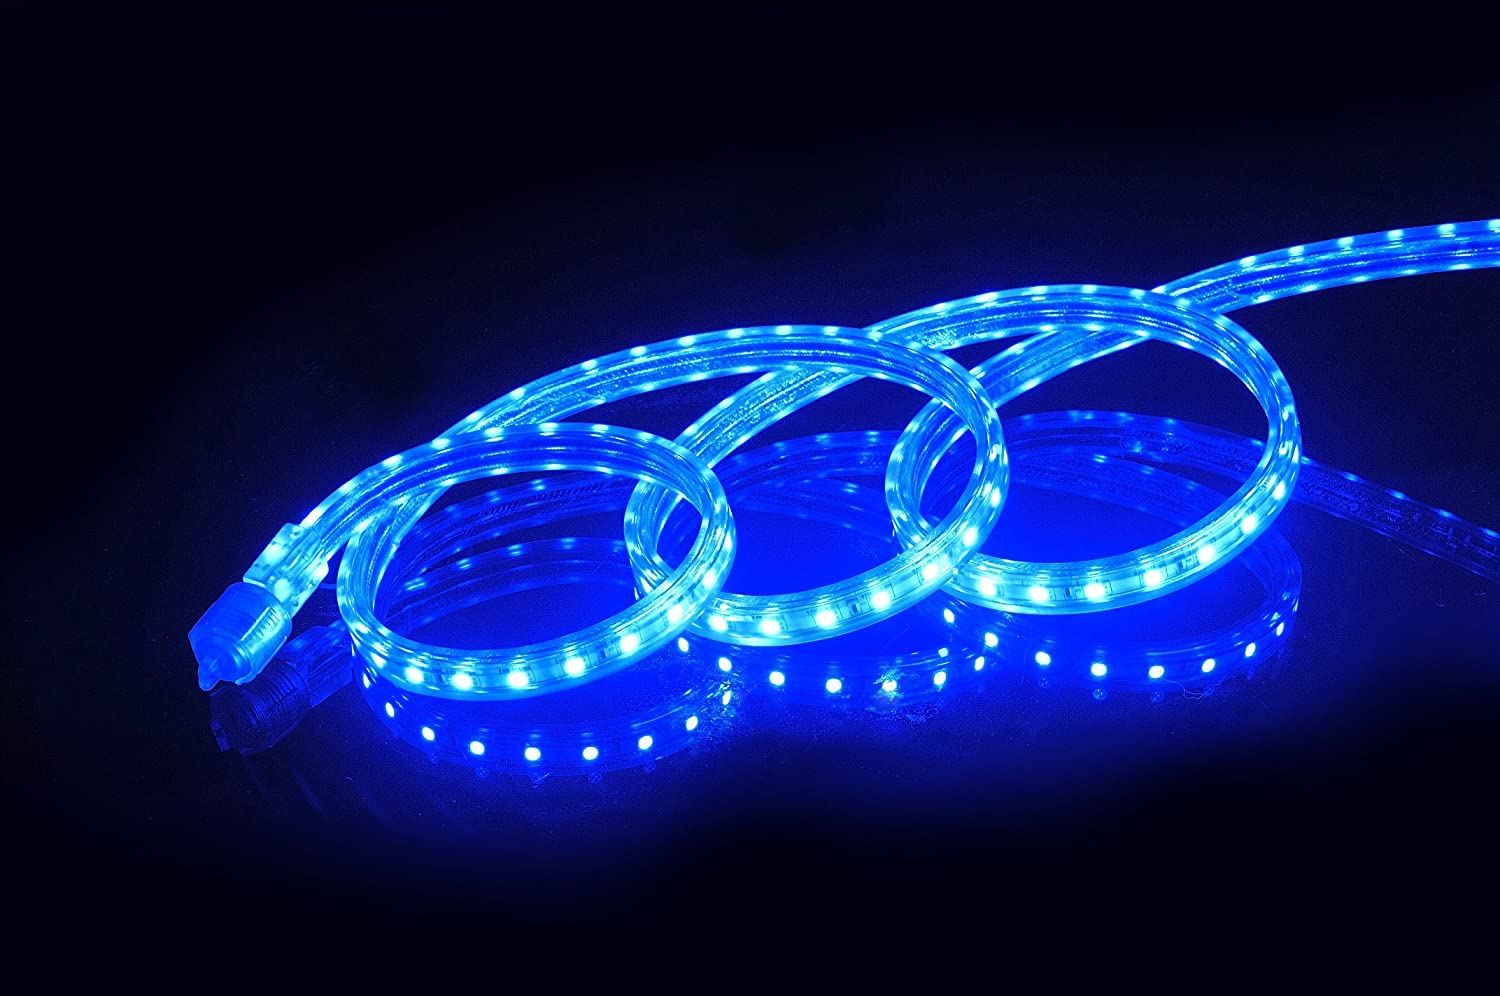 CBConcept UL Listed, 10 Feet,Super Bright 2700 Lumen, Blue, Dimmable, 110-120V AC Flexible Flat LED Strip Rope Light, 180 Units 5050 SMD LEDs, Indoor Outdoor Use, Ready to use